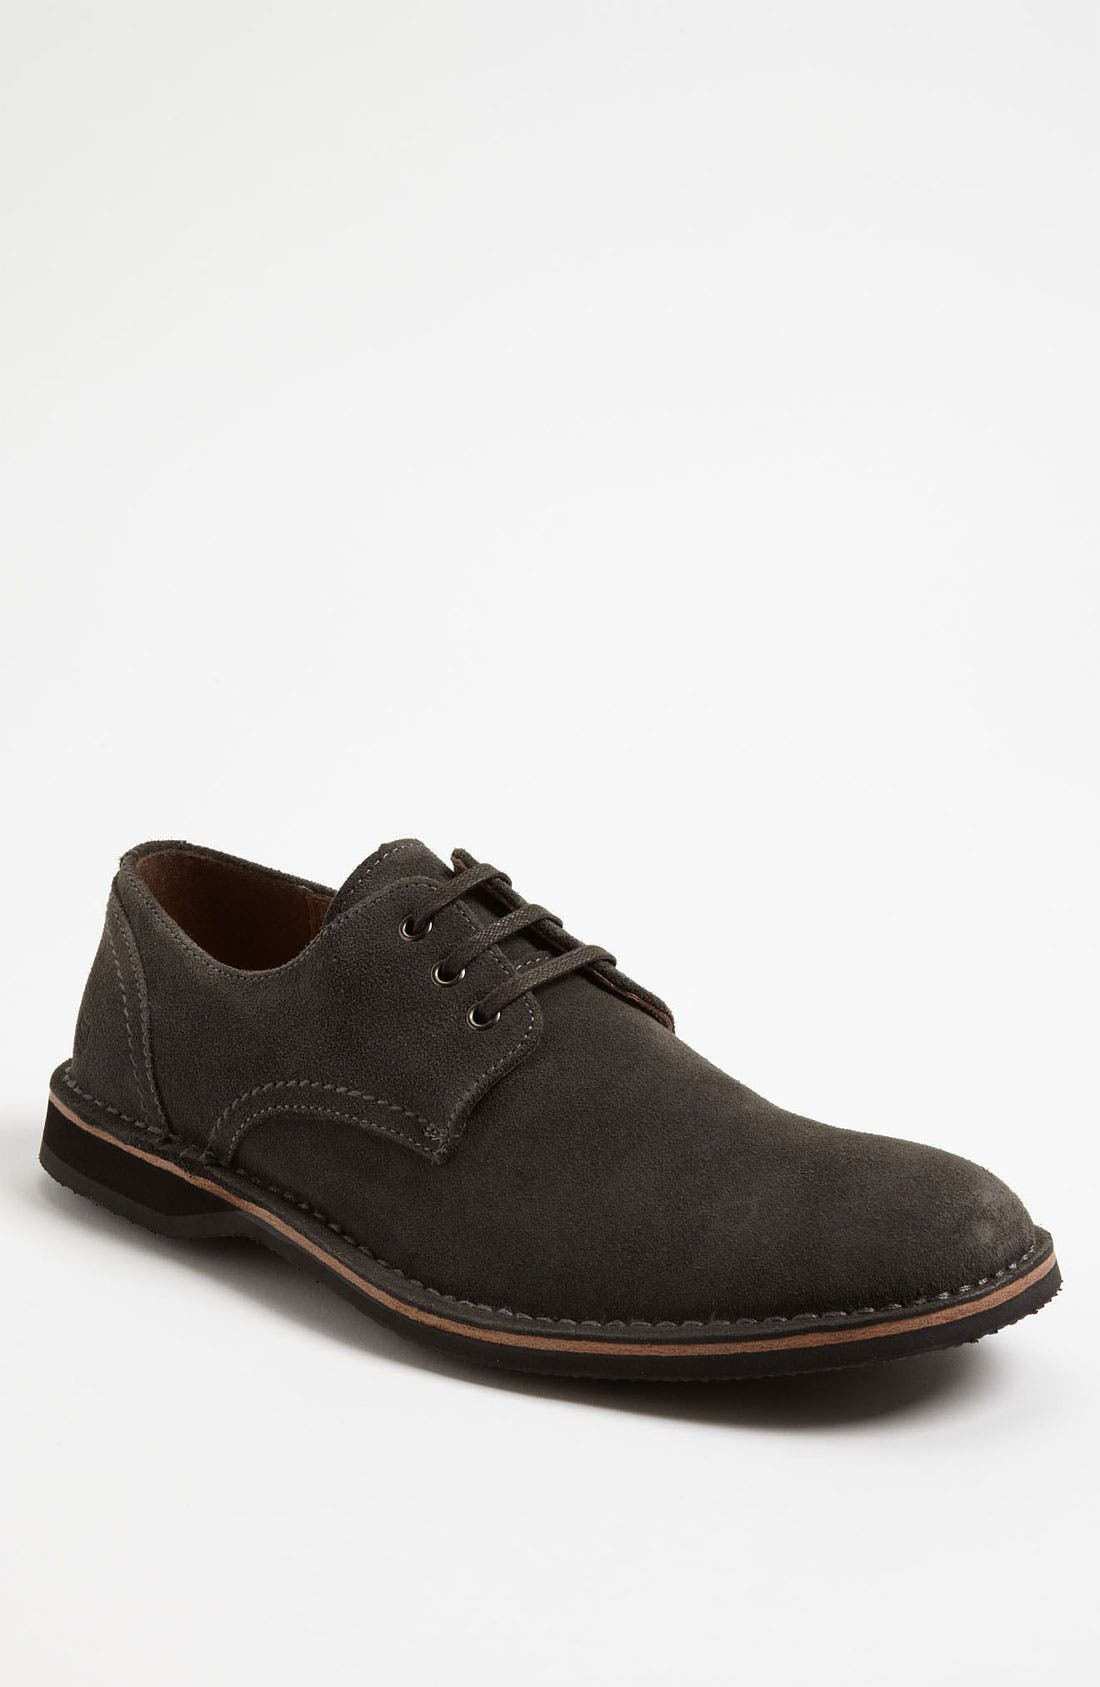 Alternate Image 1 Selected - Andrew Marc 'Dorchester' Buck Shoe (Men)